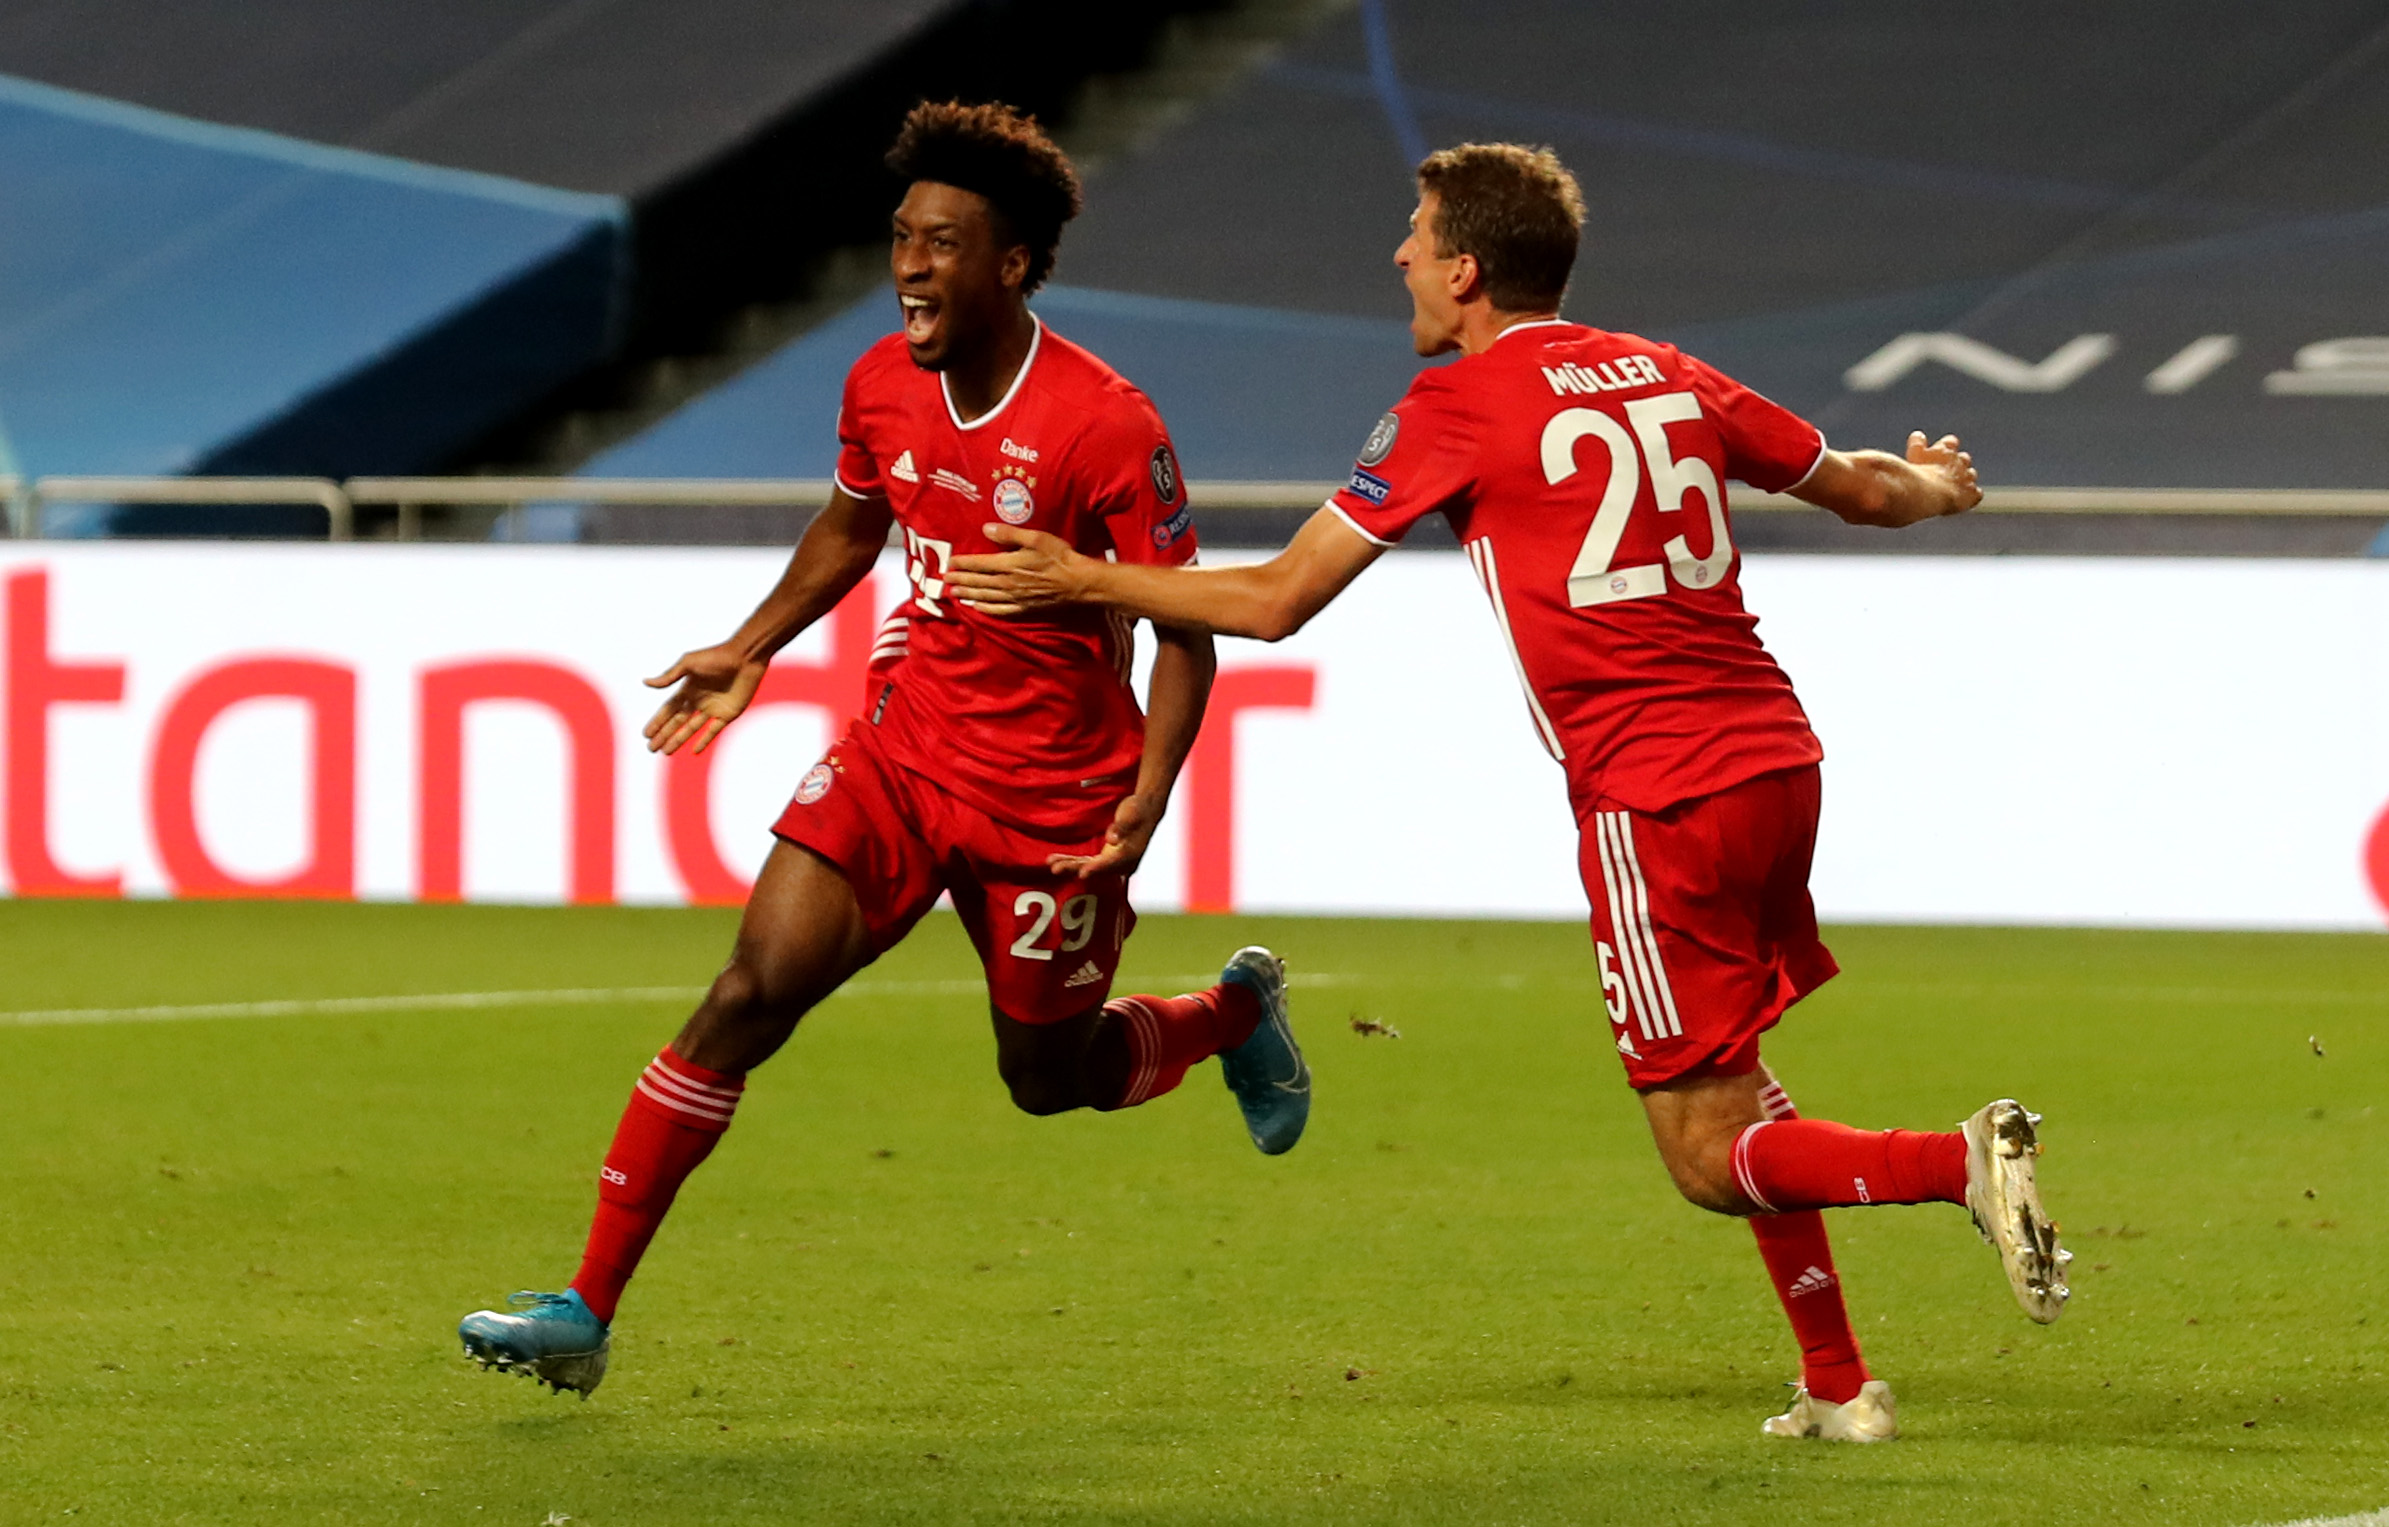 Bayern Munich beats Paris Saint-Germain to win the Champions League